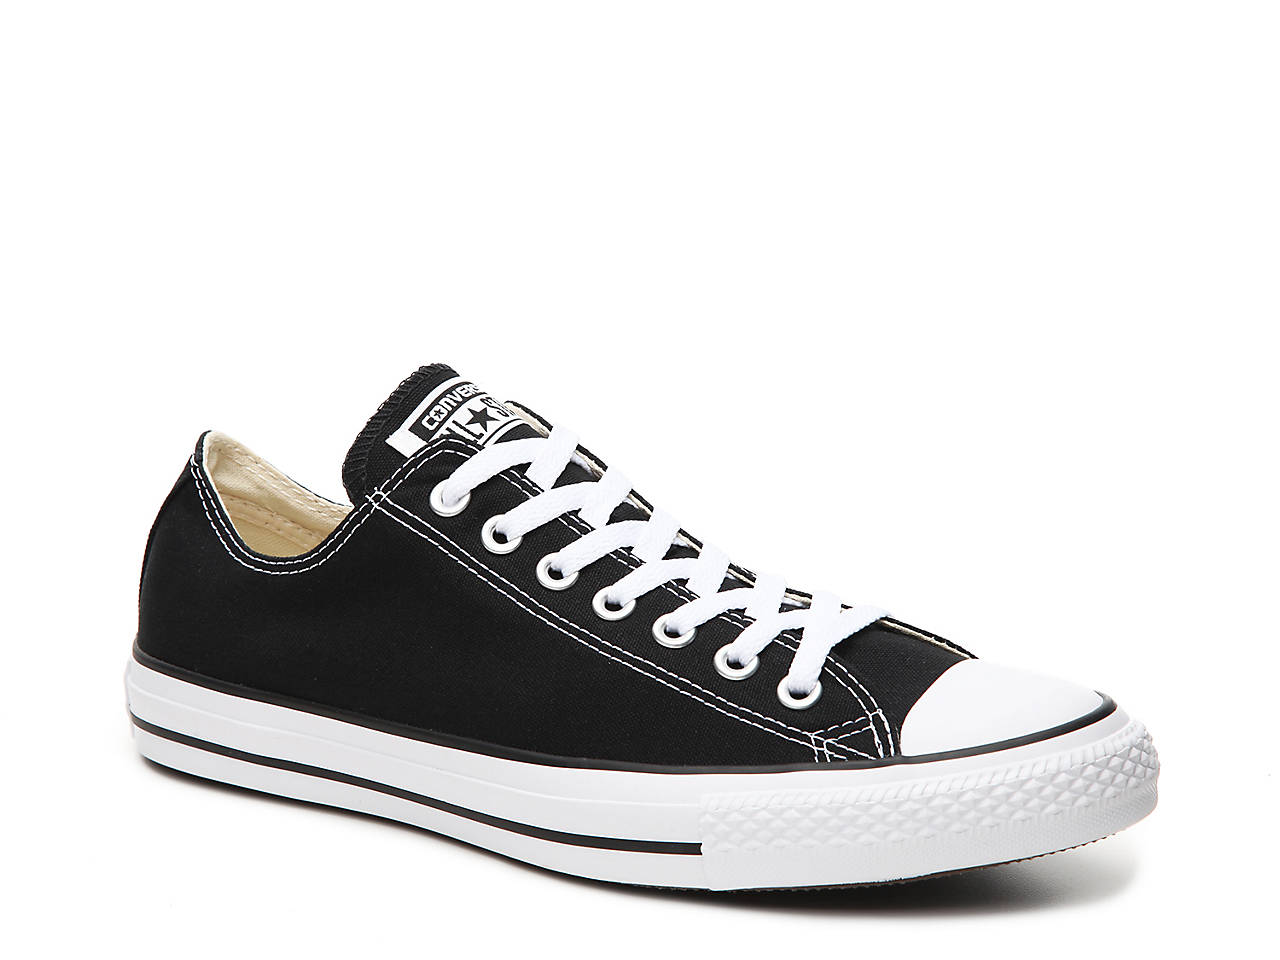 ef77838cedcb Converse Chuck Taylor All Star Sneaker - Men s Men s Shoes